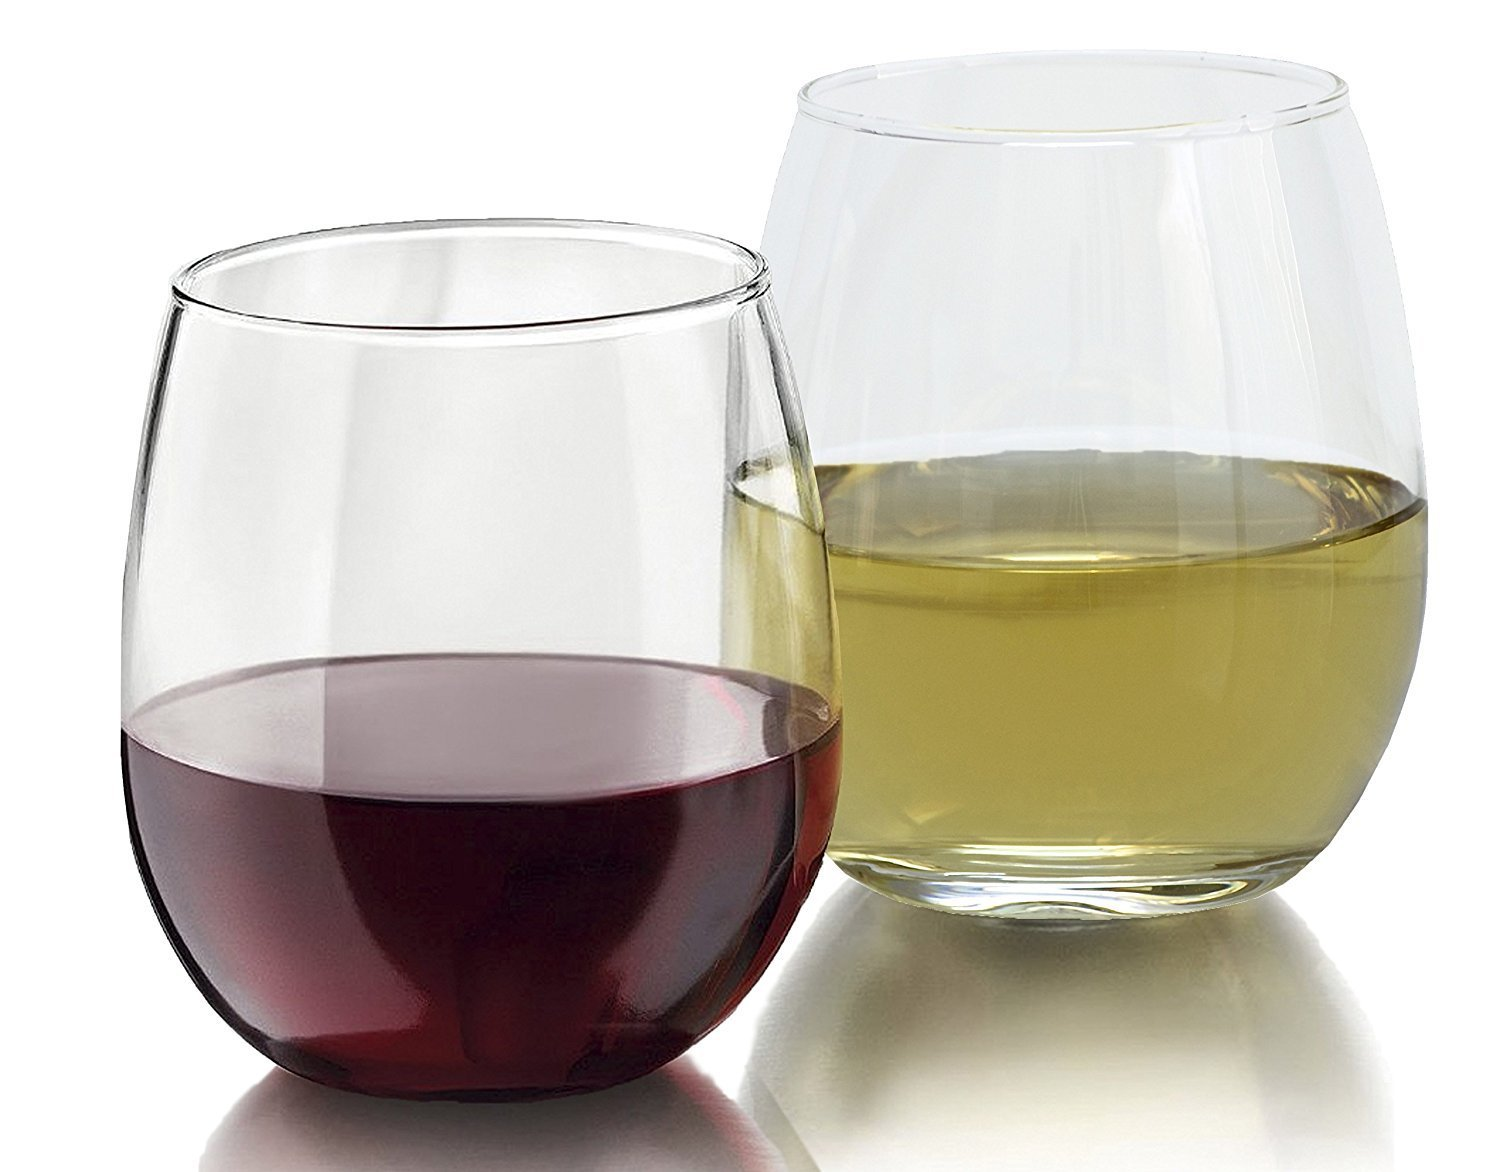 Royal 4-Piece Stemless Wine Glass Set, Elongated and Shatter-Resistant Glass, 15oz Equinox International RYL-4PCWN-TALL